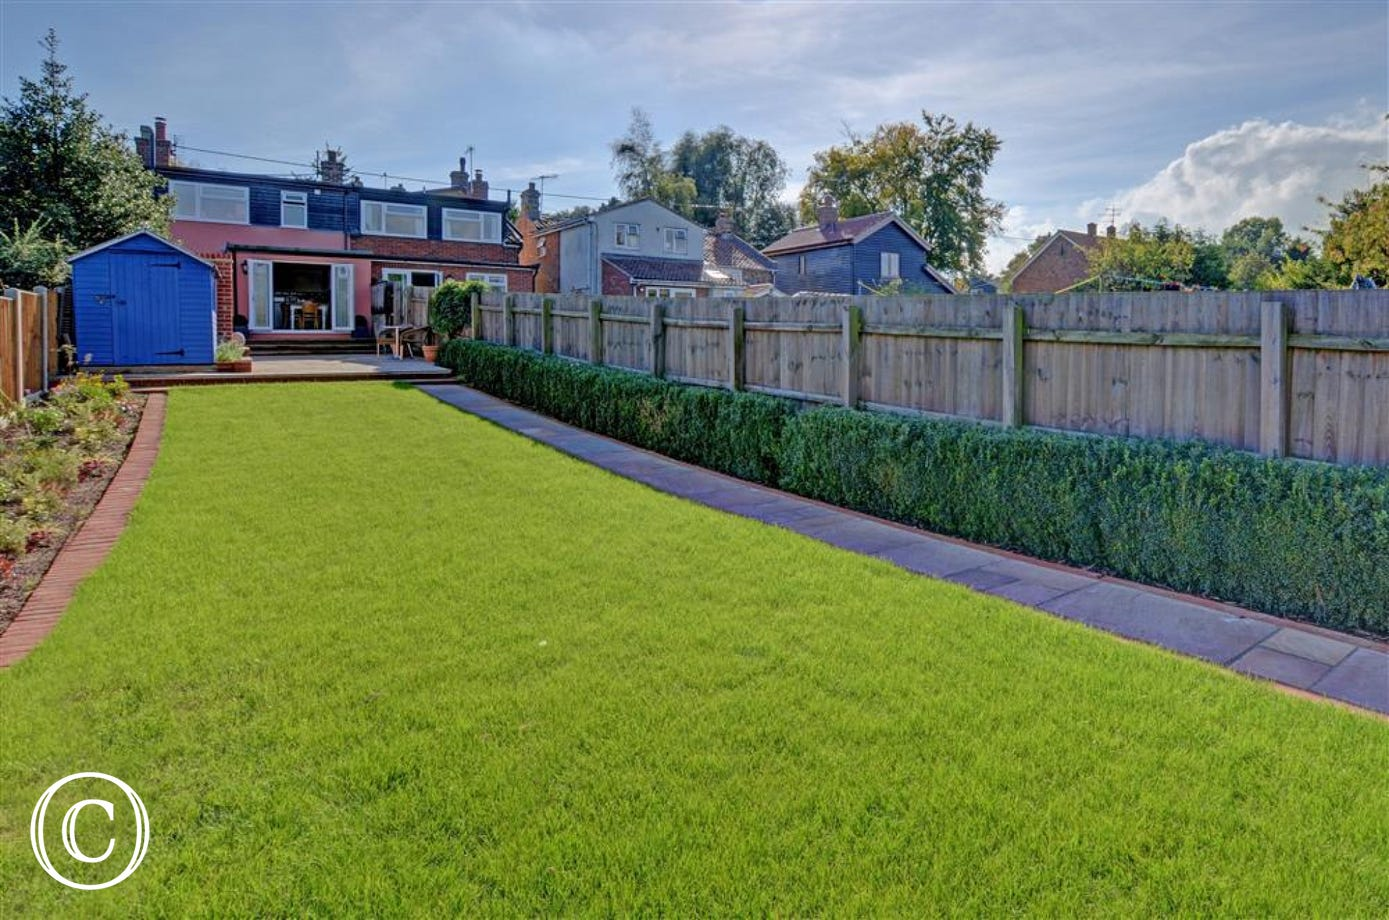 Enjoy this bright green lawn at Friday Place when you are occupying the property.